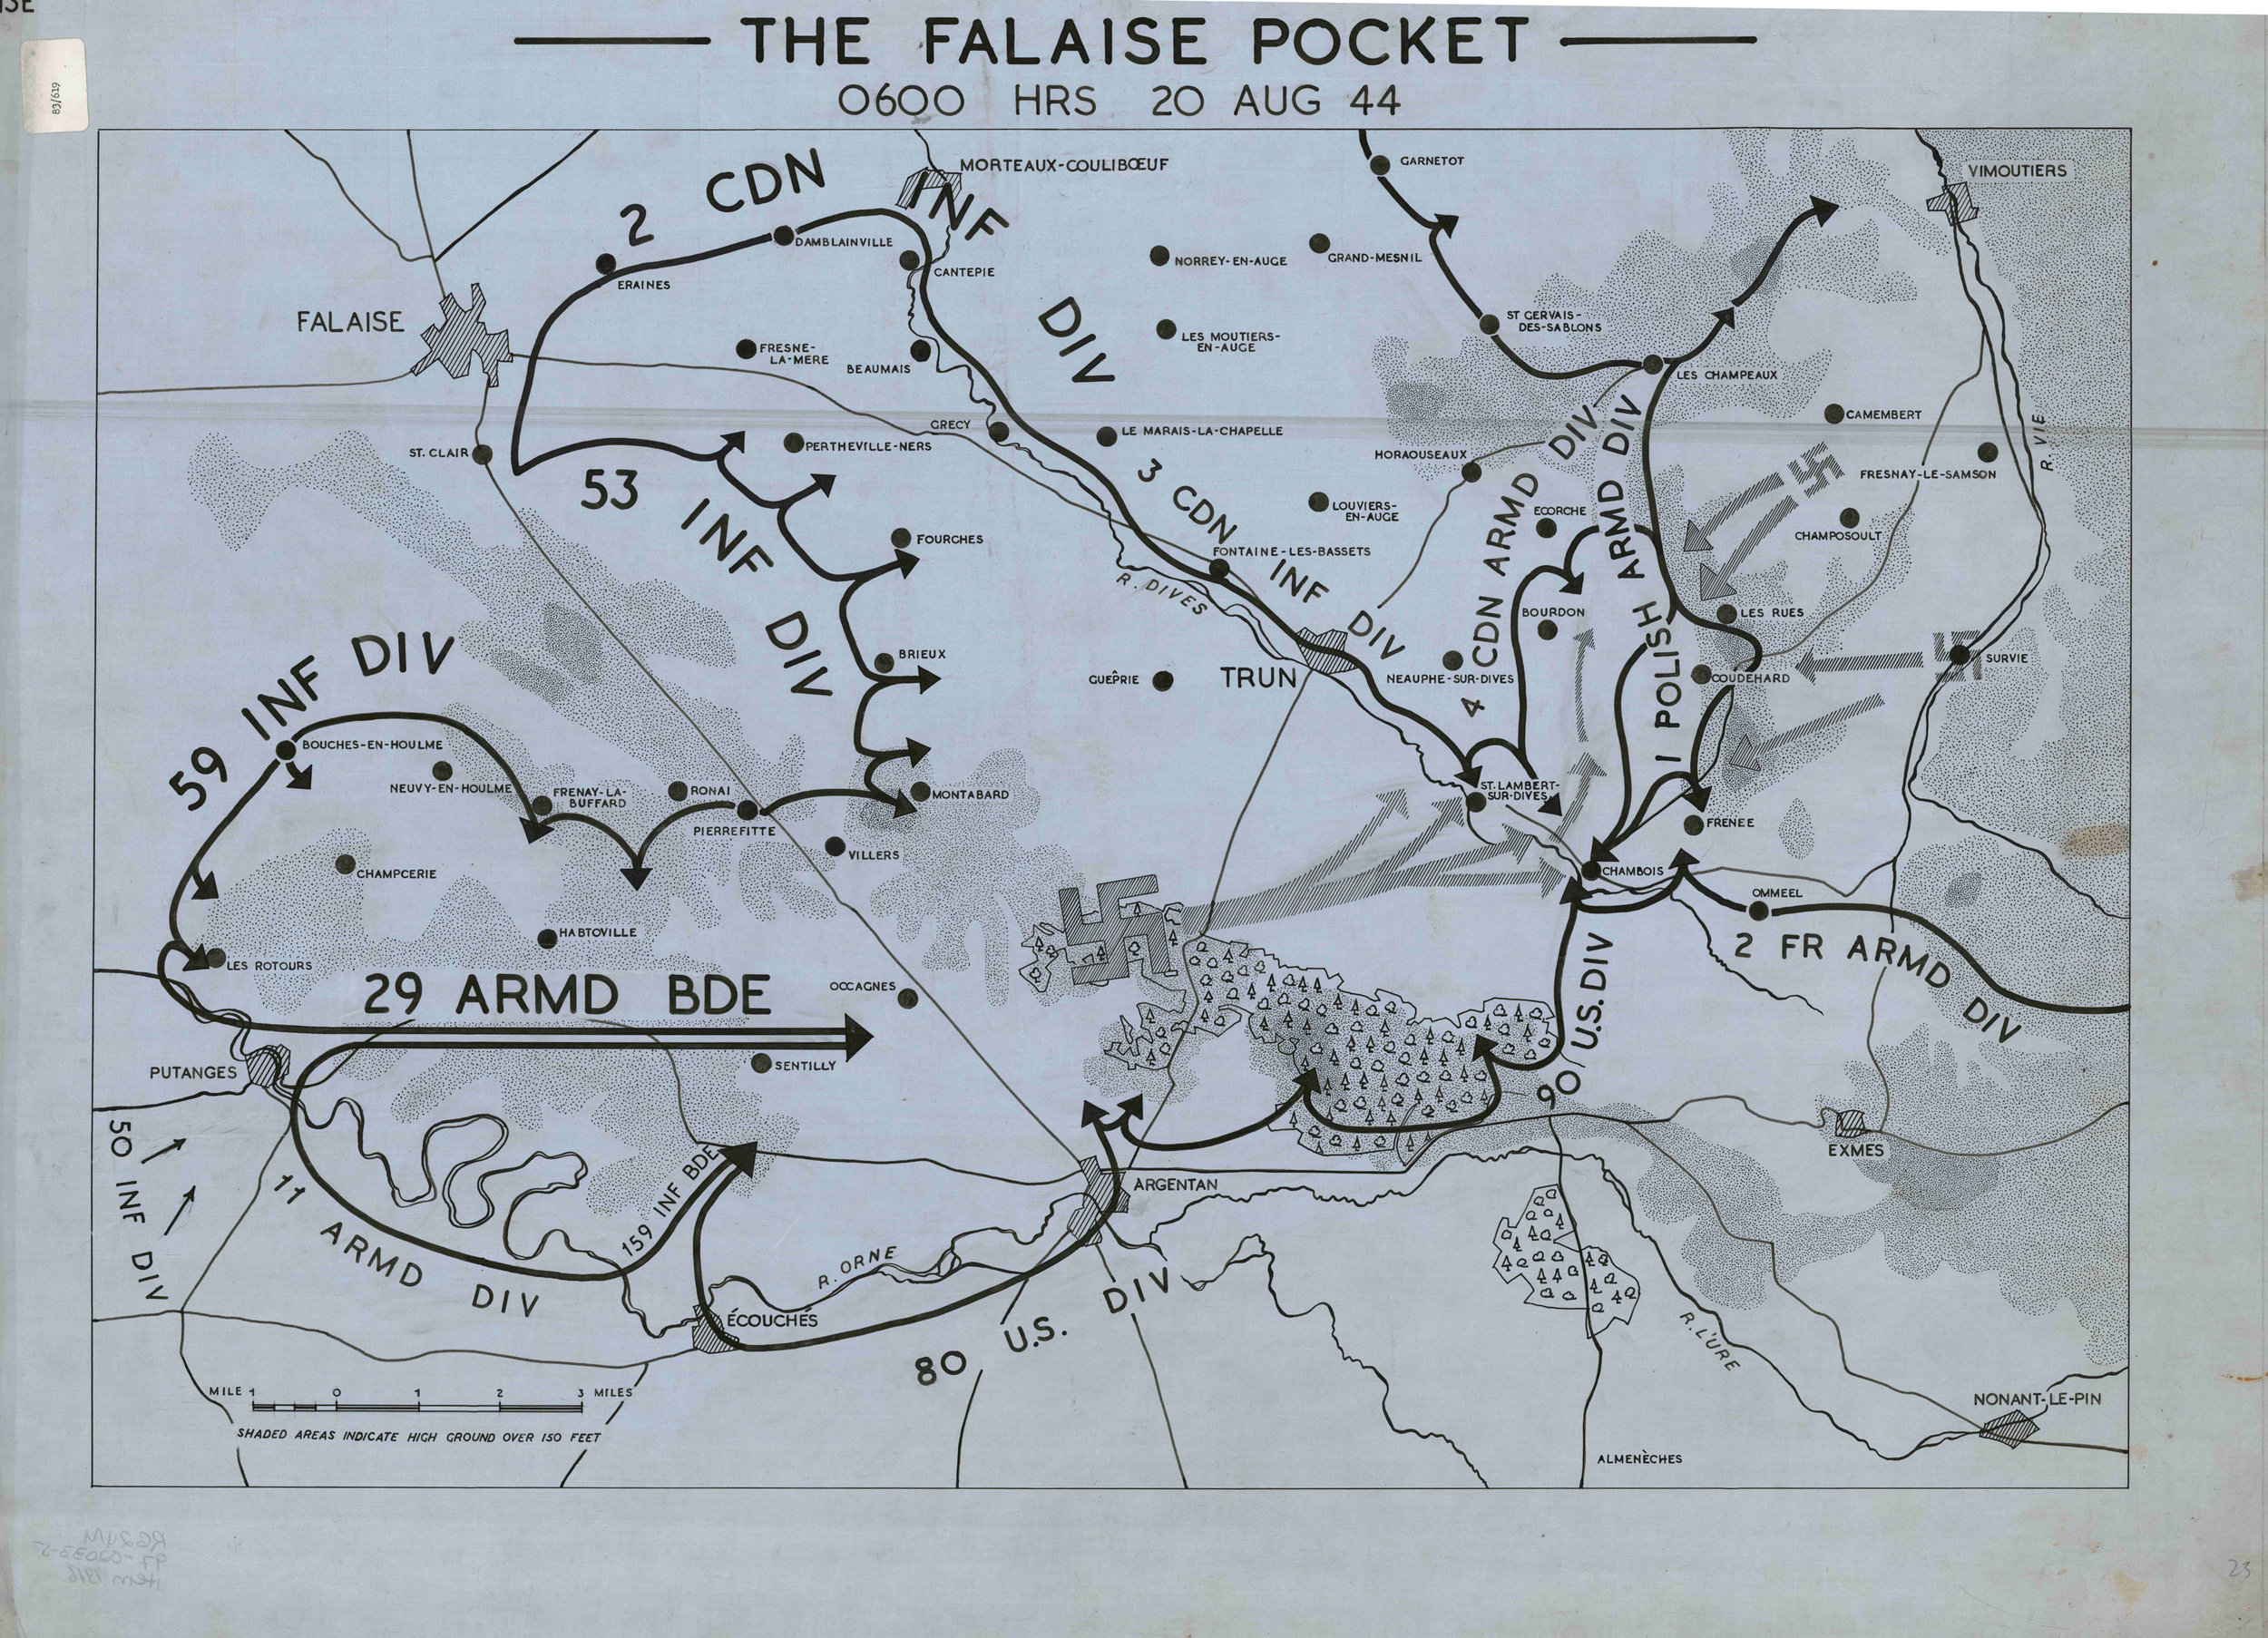 Falaise-pocket.jpg